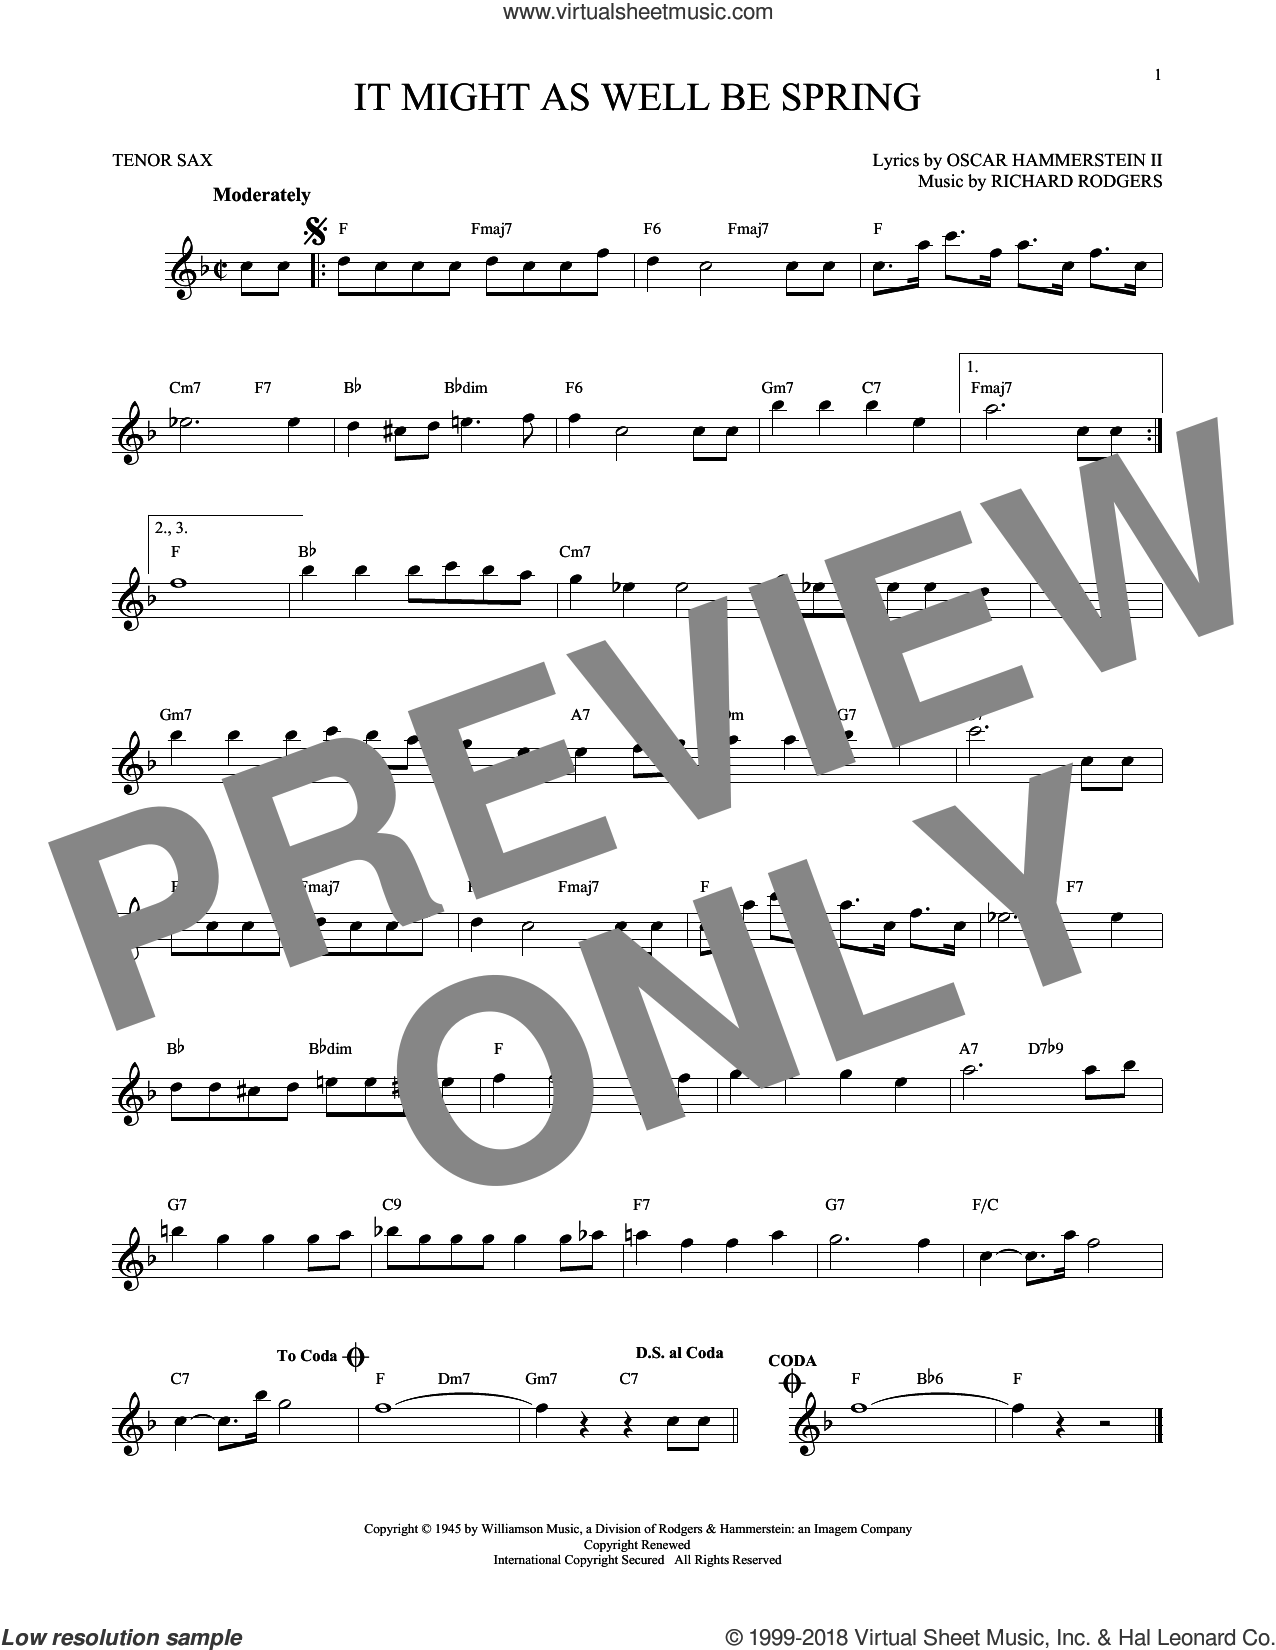 It Might As Well Be Spring sheet music for tenor saxophone solo by Rodgers & Hammerstein, Oscar II Hammerstein and Richard Rodgers, intermediate